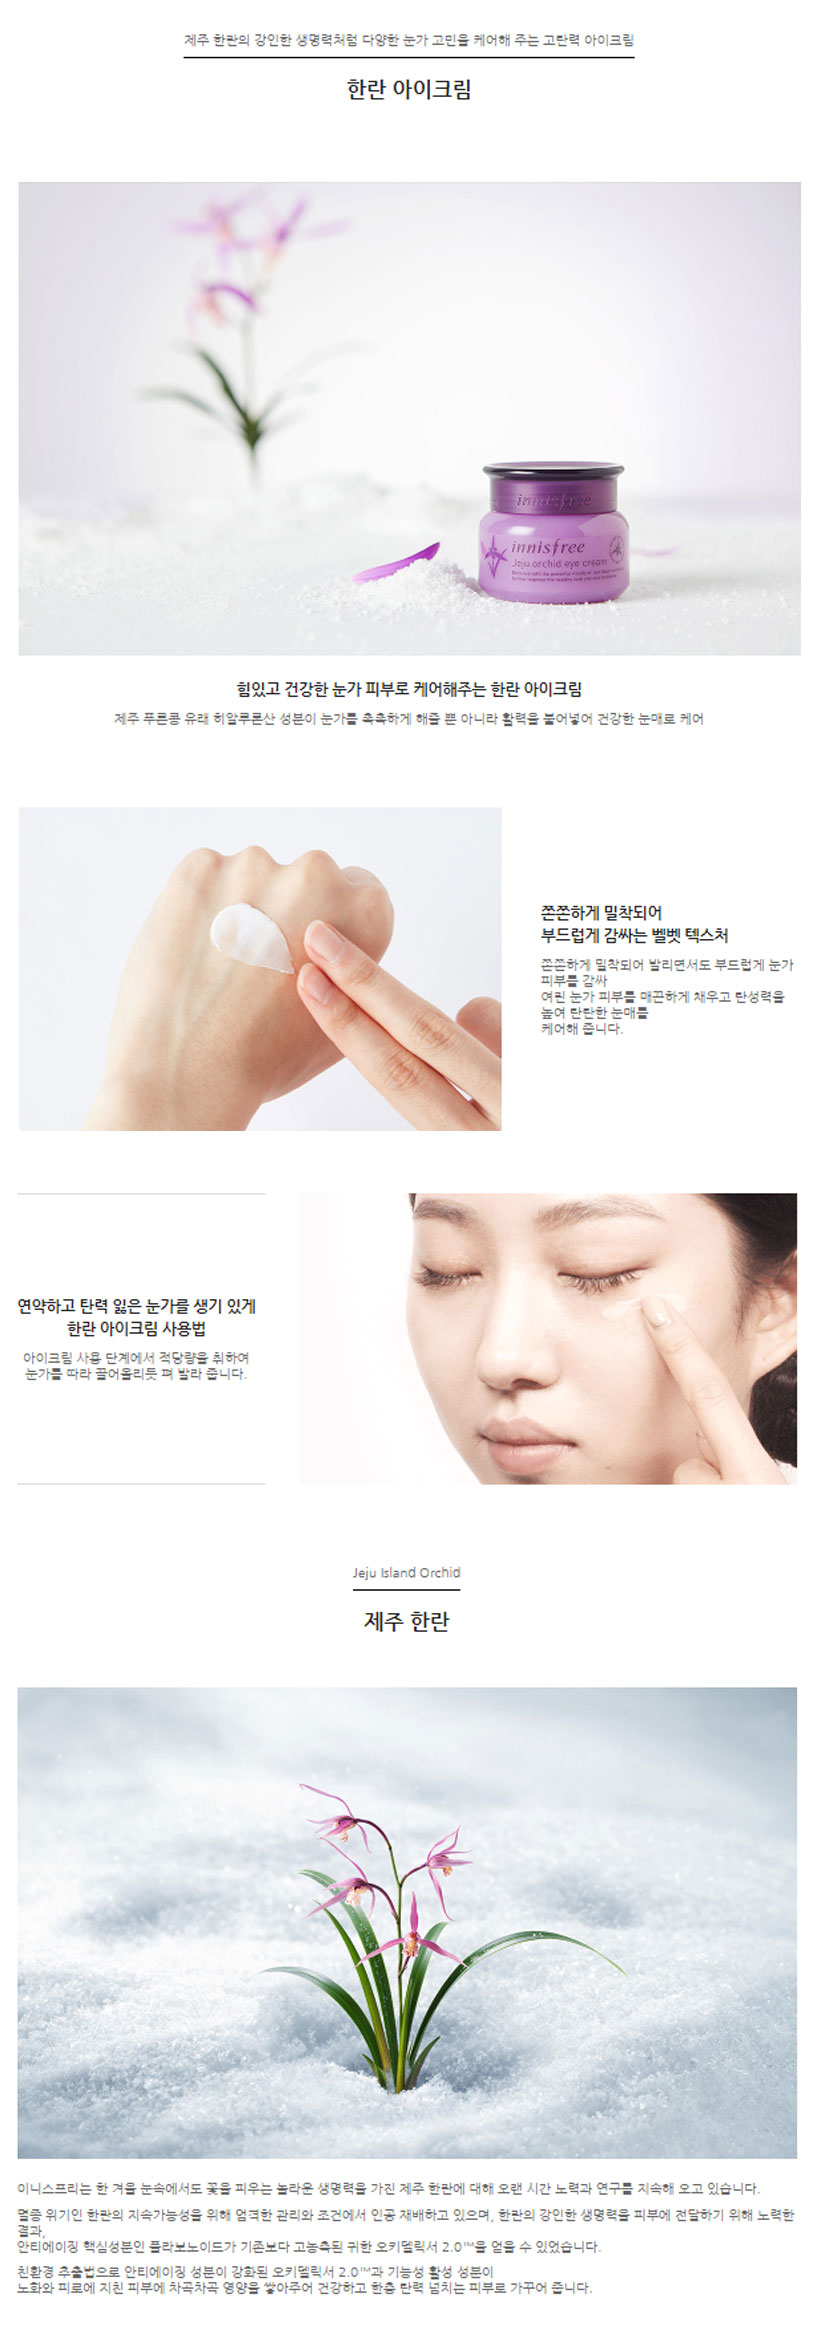 Innisfree Jeju Orchid Eye Cream 30ml Weight 81g Own Label Sleeping Pack 80ml Apply A Small Amount Of Around Your Eyes Gently Pat The For Best Absorption